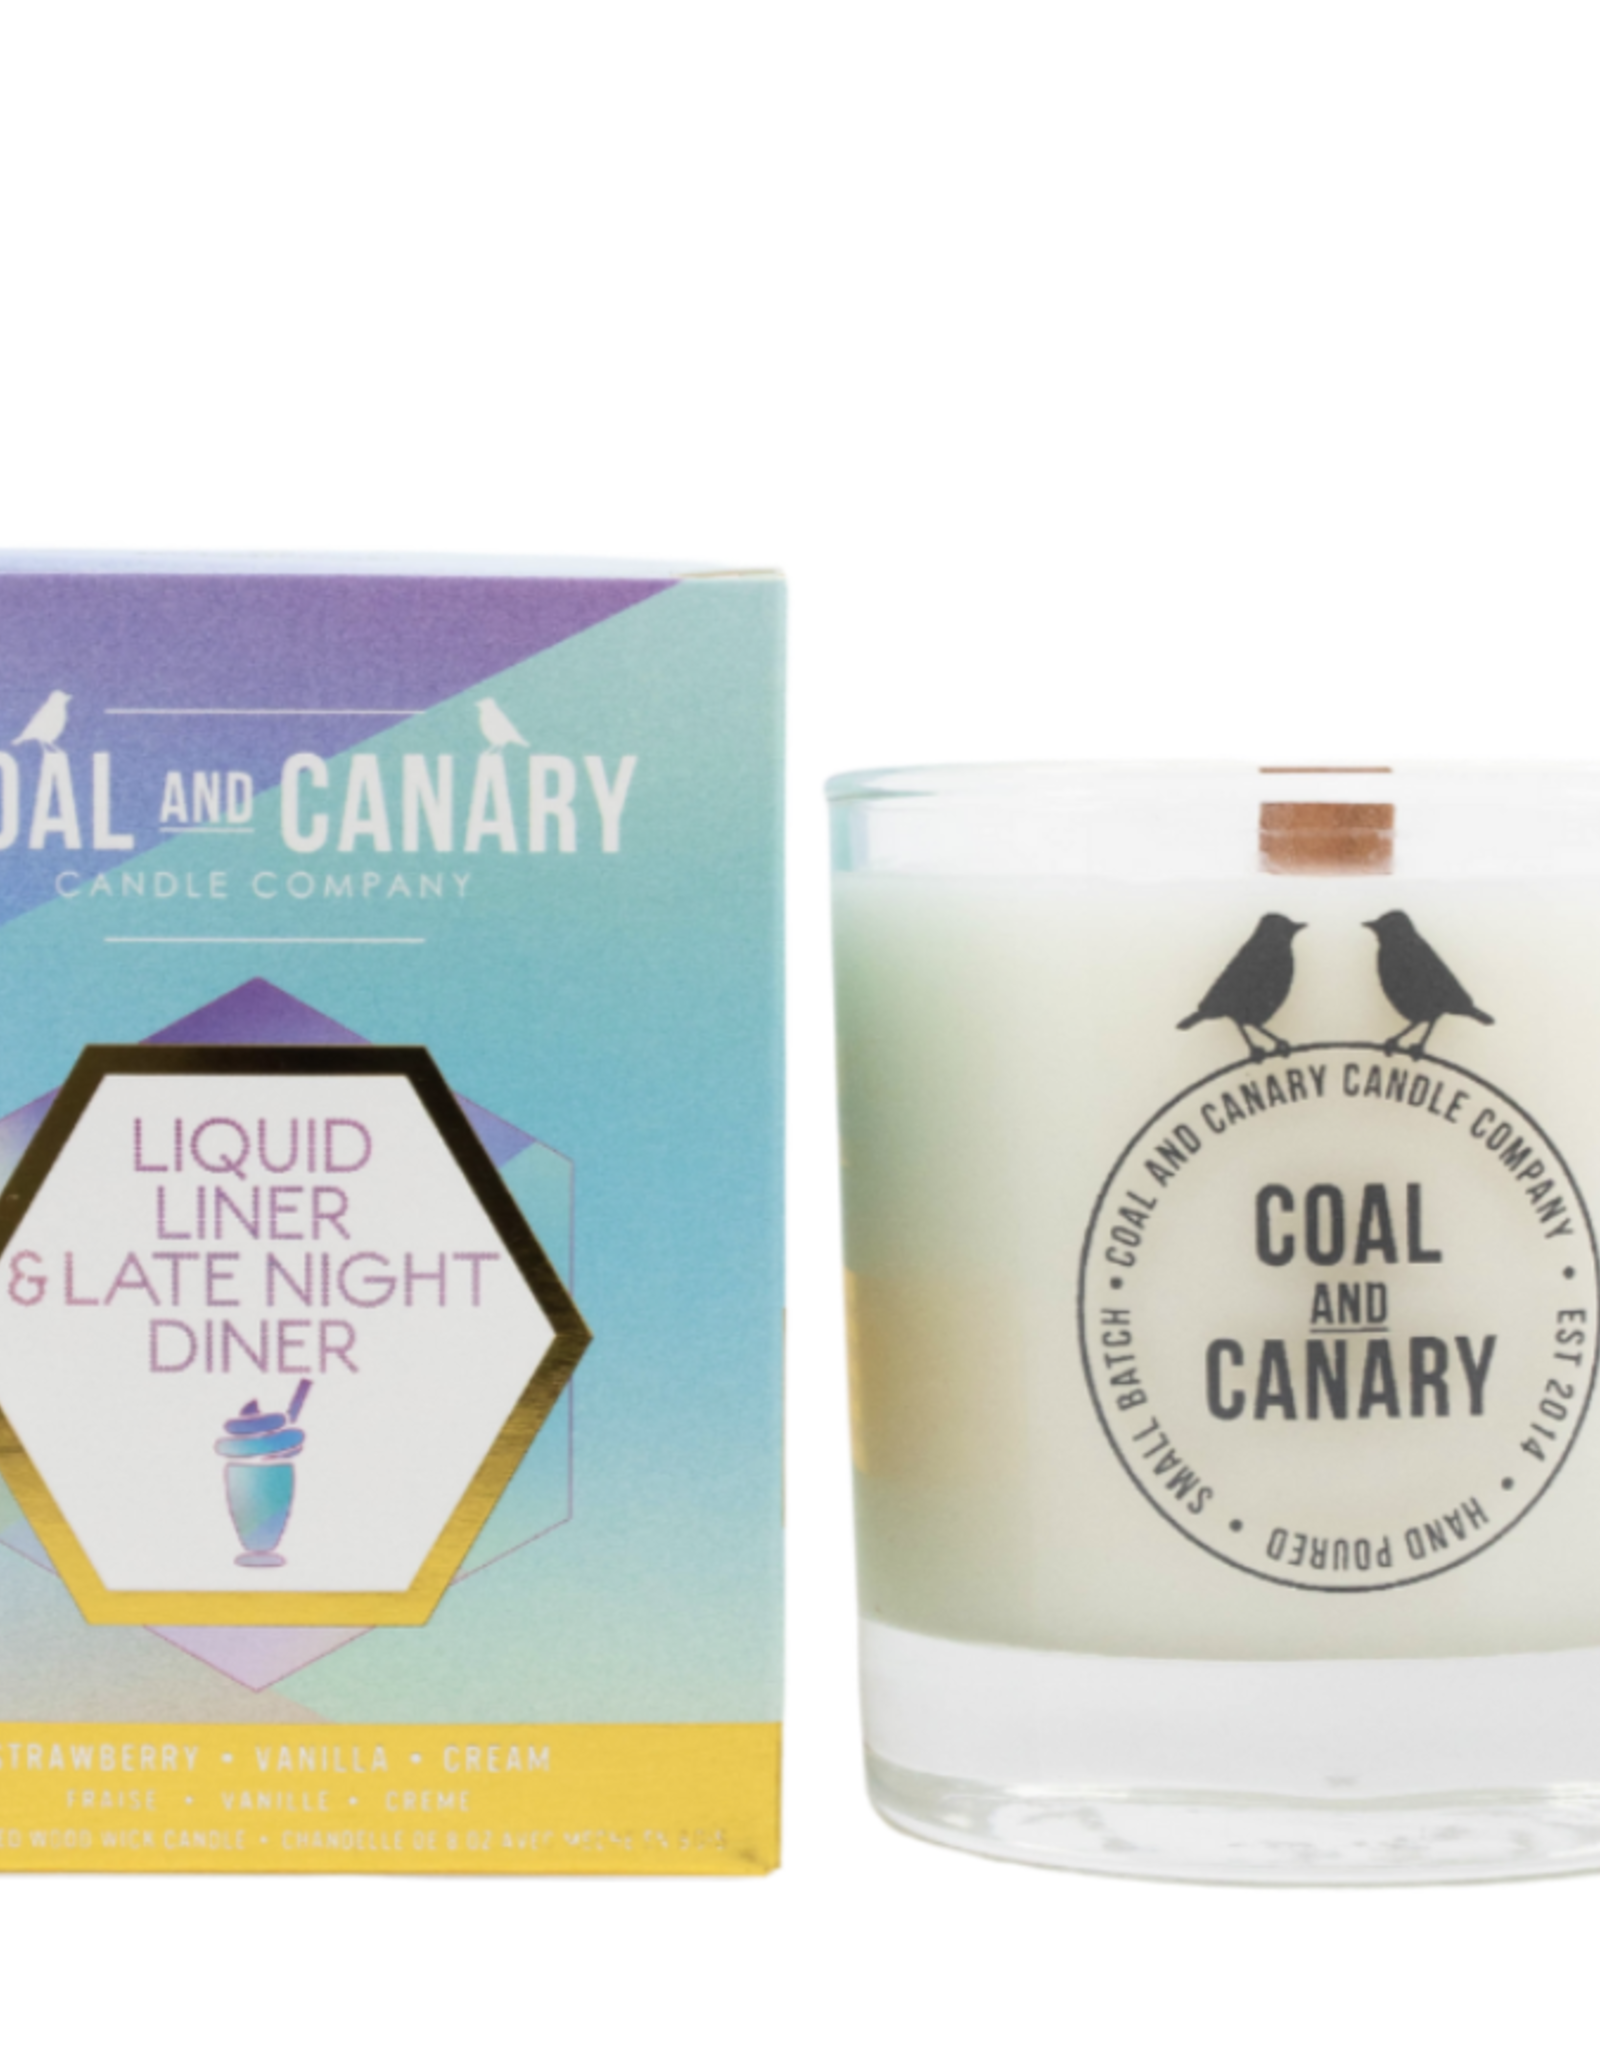 Liquid Liner & Late Night Diner - 8oz. Wood Wick Candle